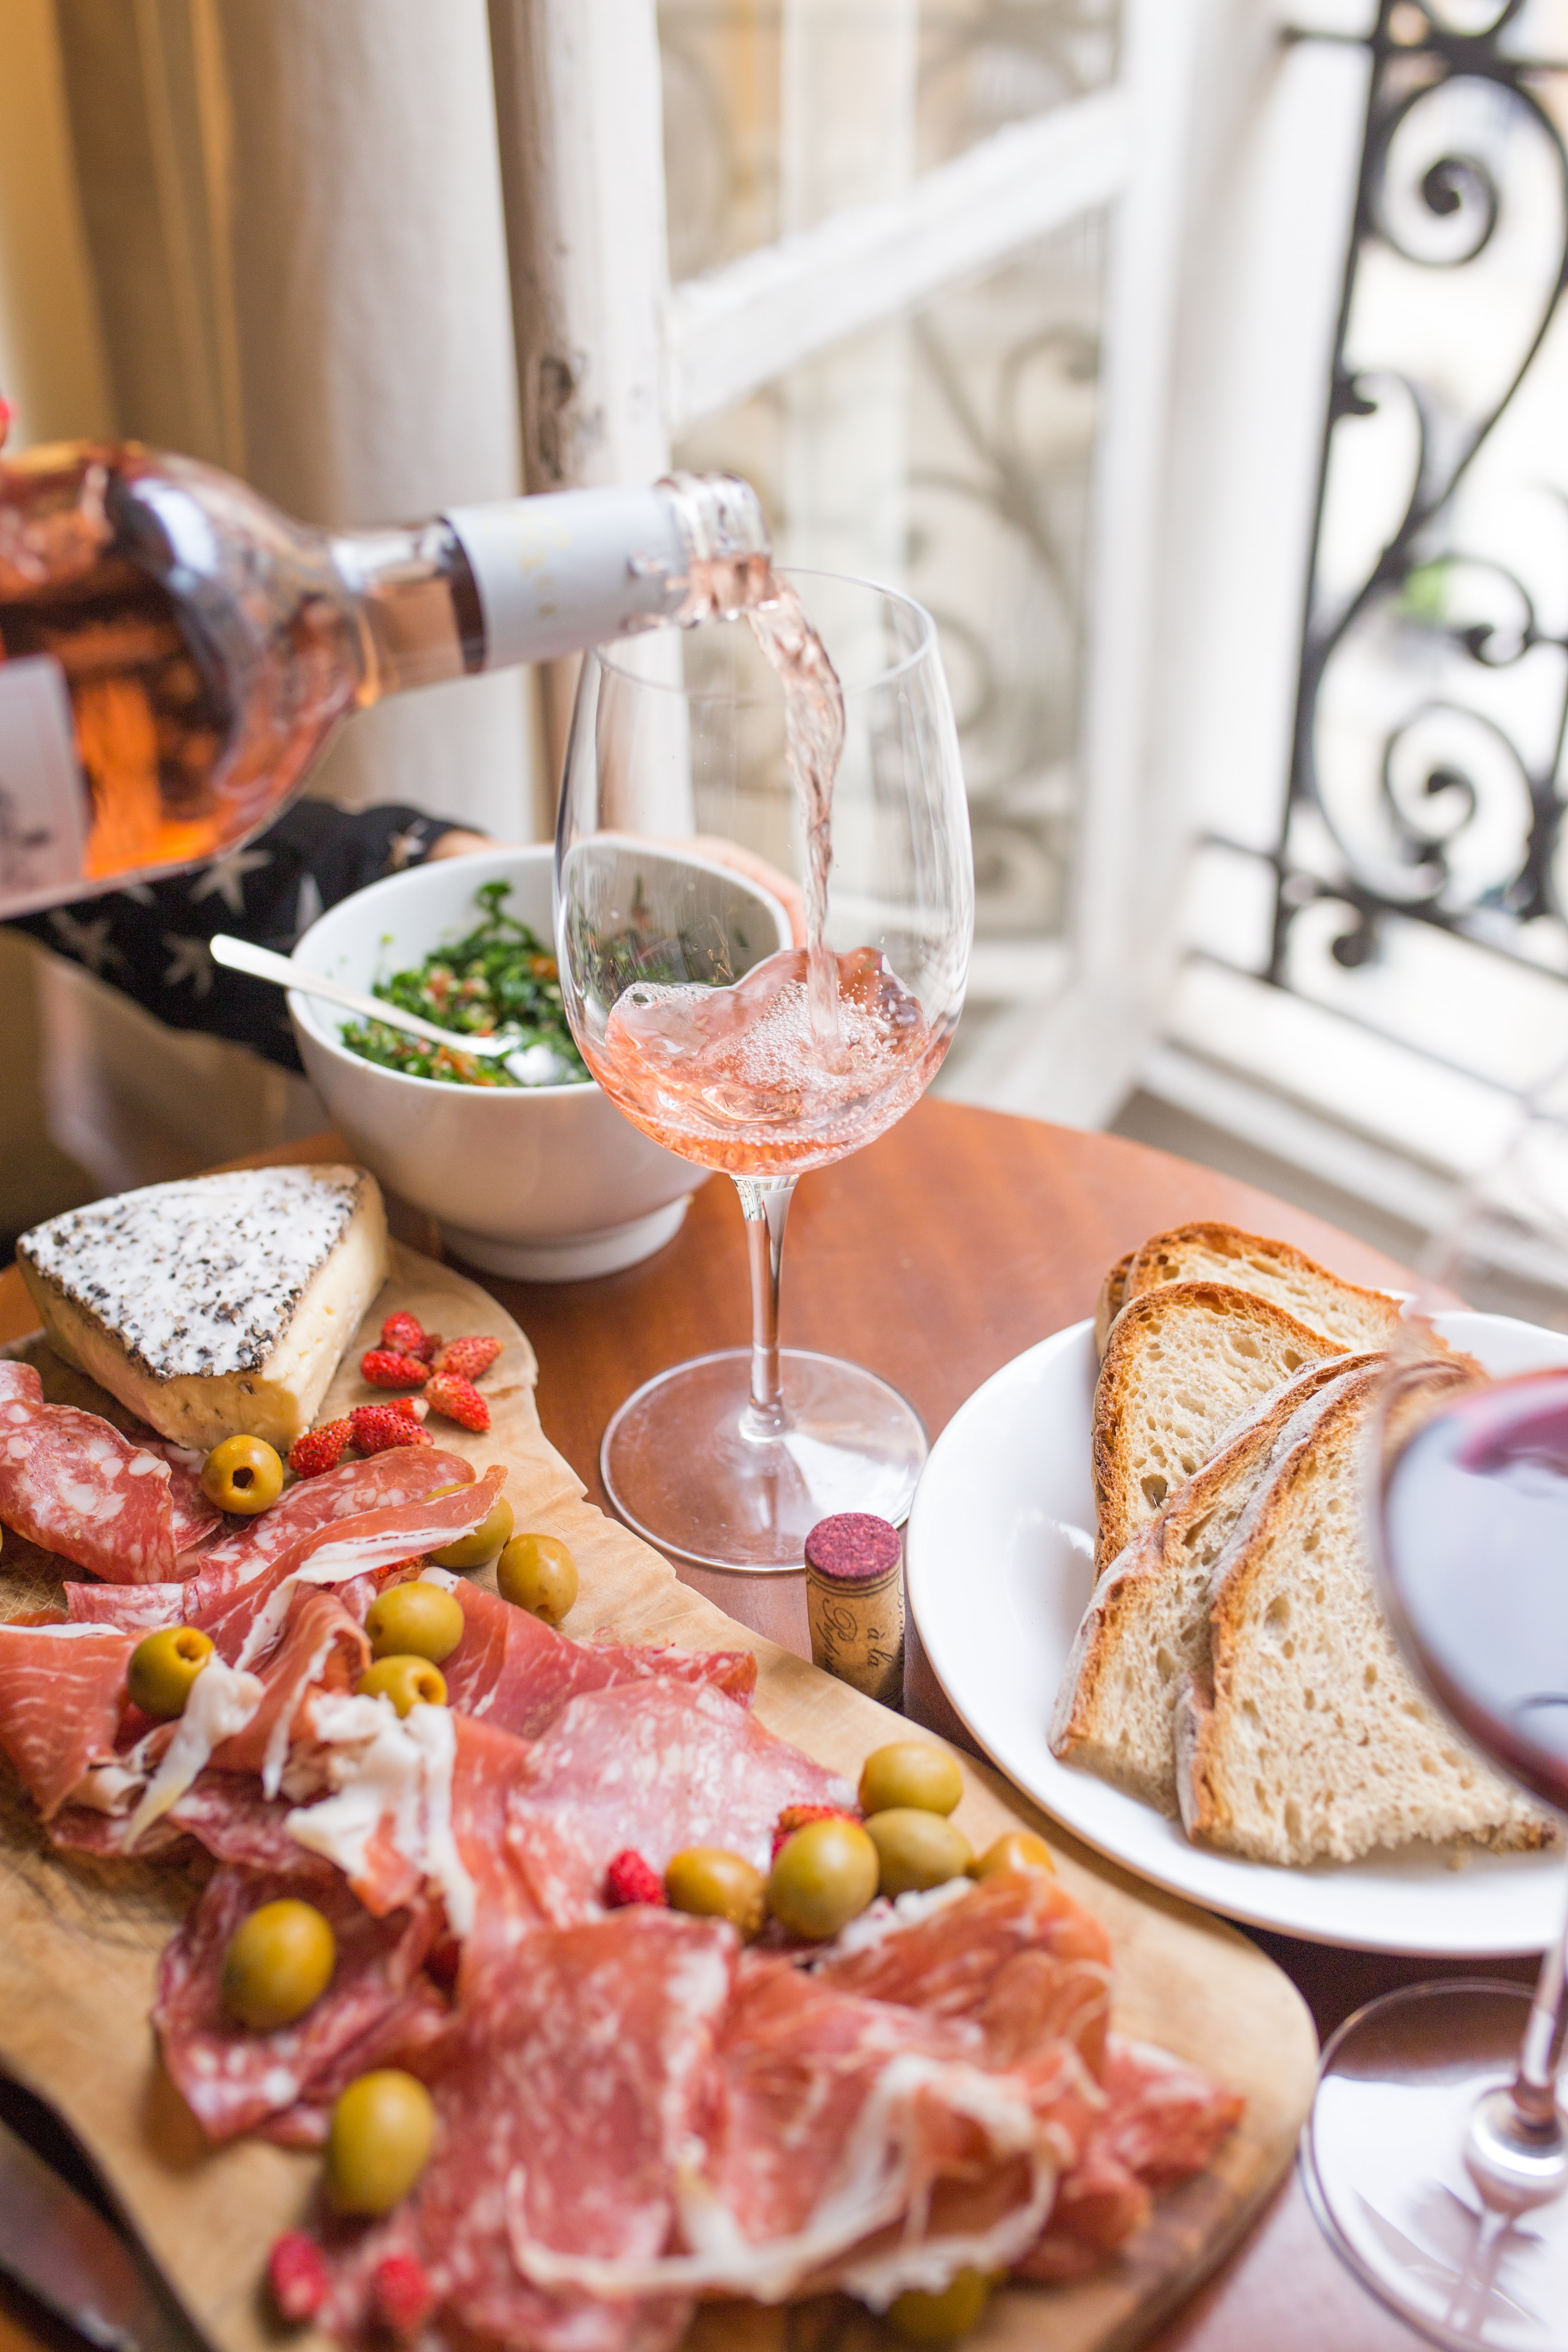 A person pouring rose into a wine glass, a cheese board with brie and salami, and bread on a table in Paris